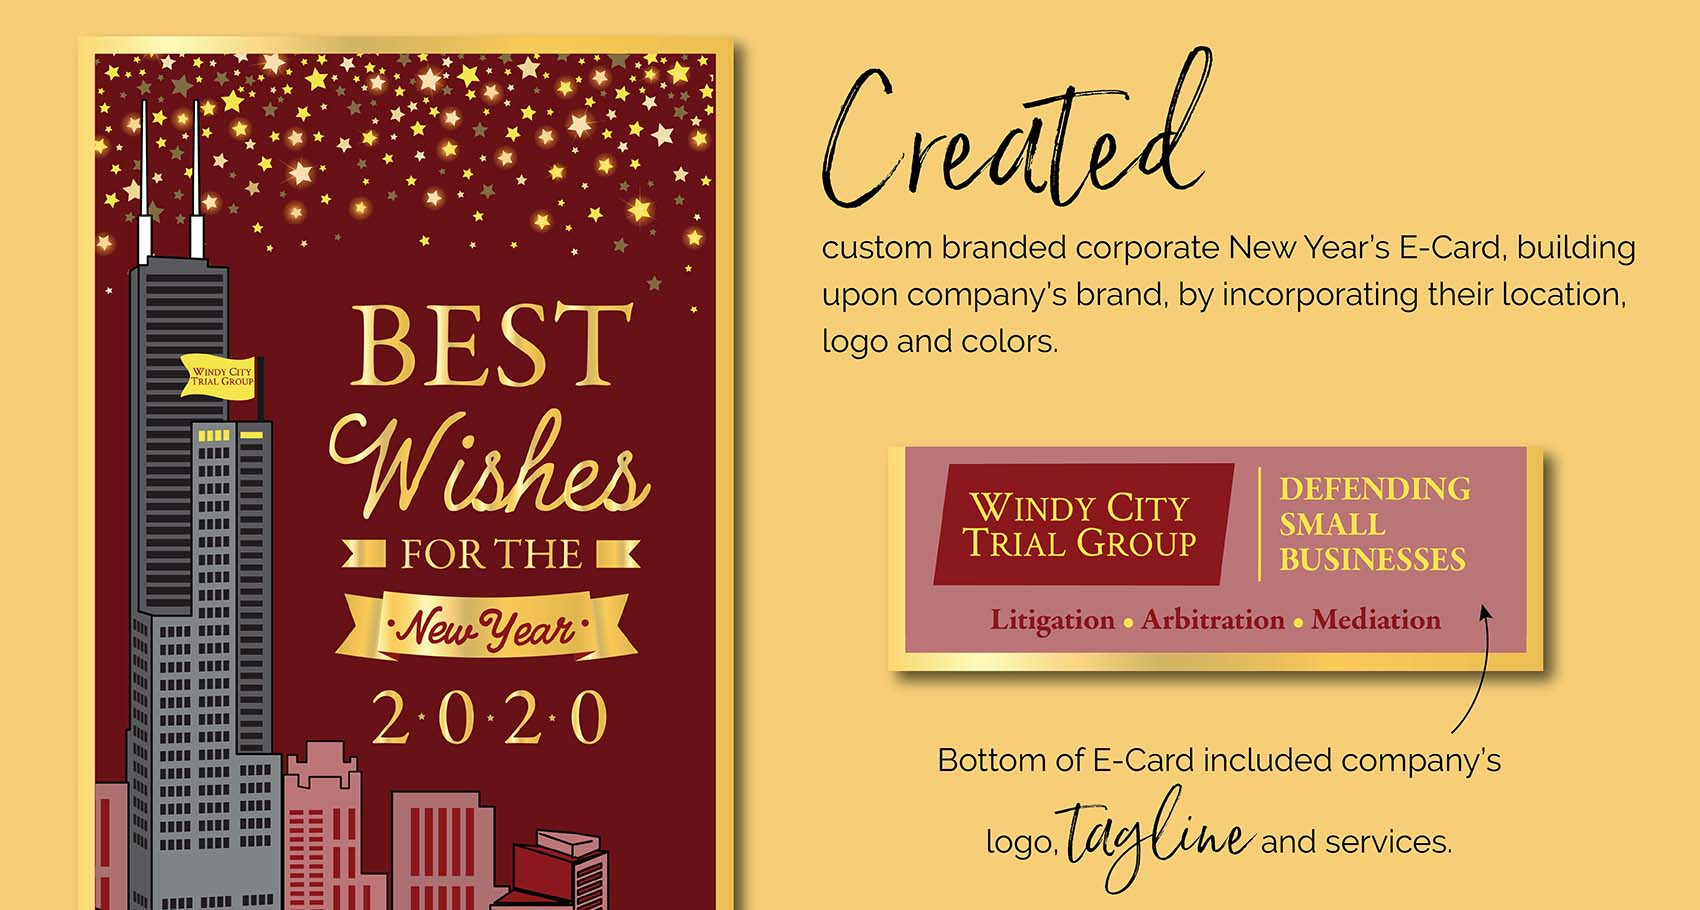 Windy City Trial Group E-Card Design